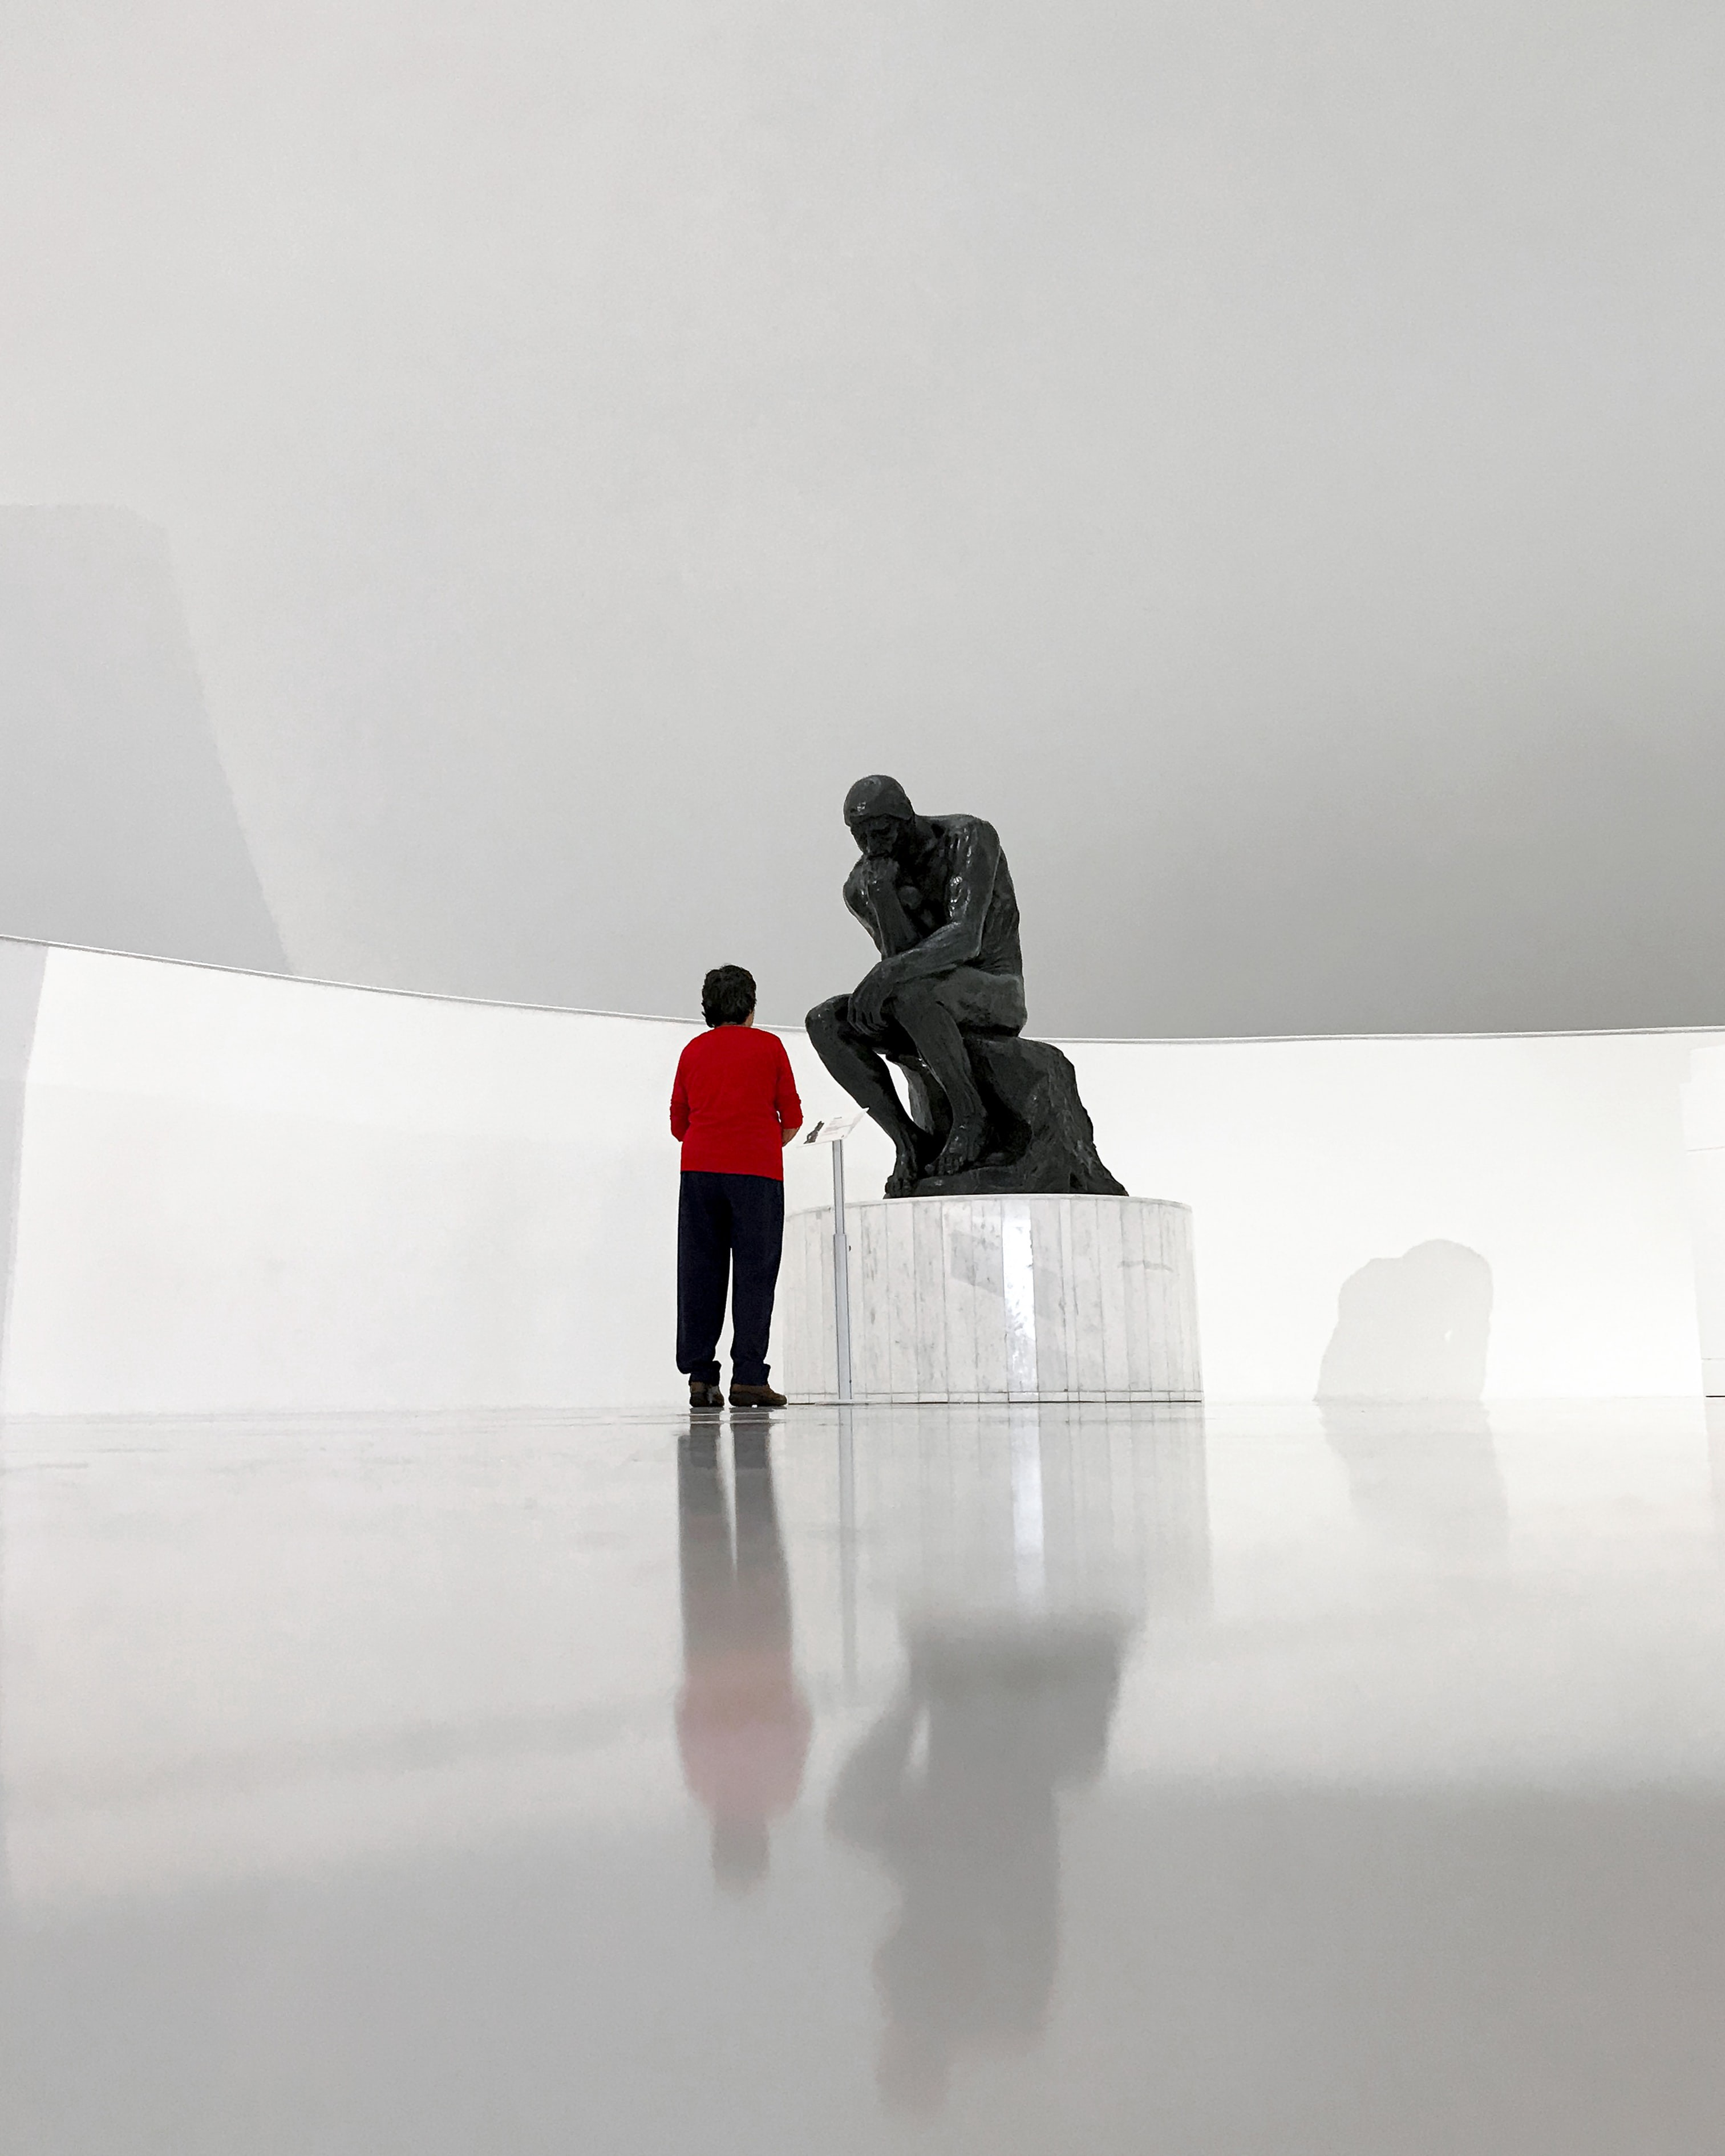 A person stands in front of the Thinker sculpture